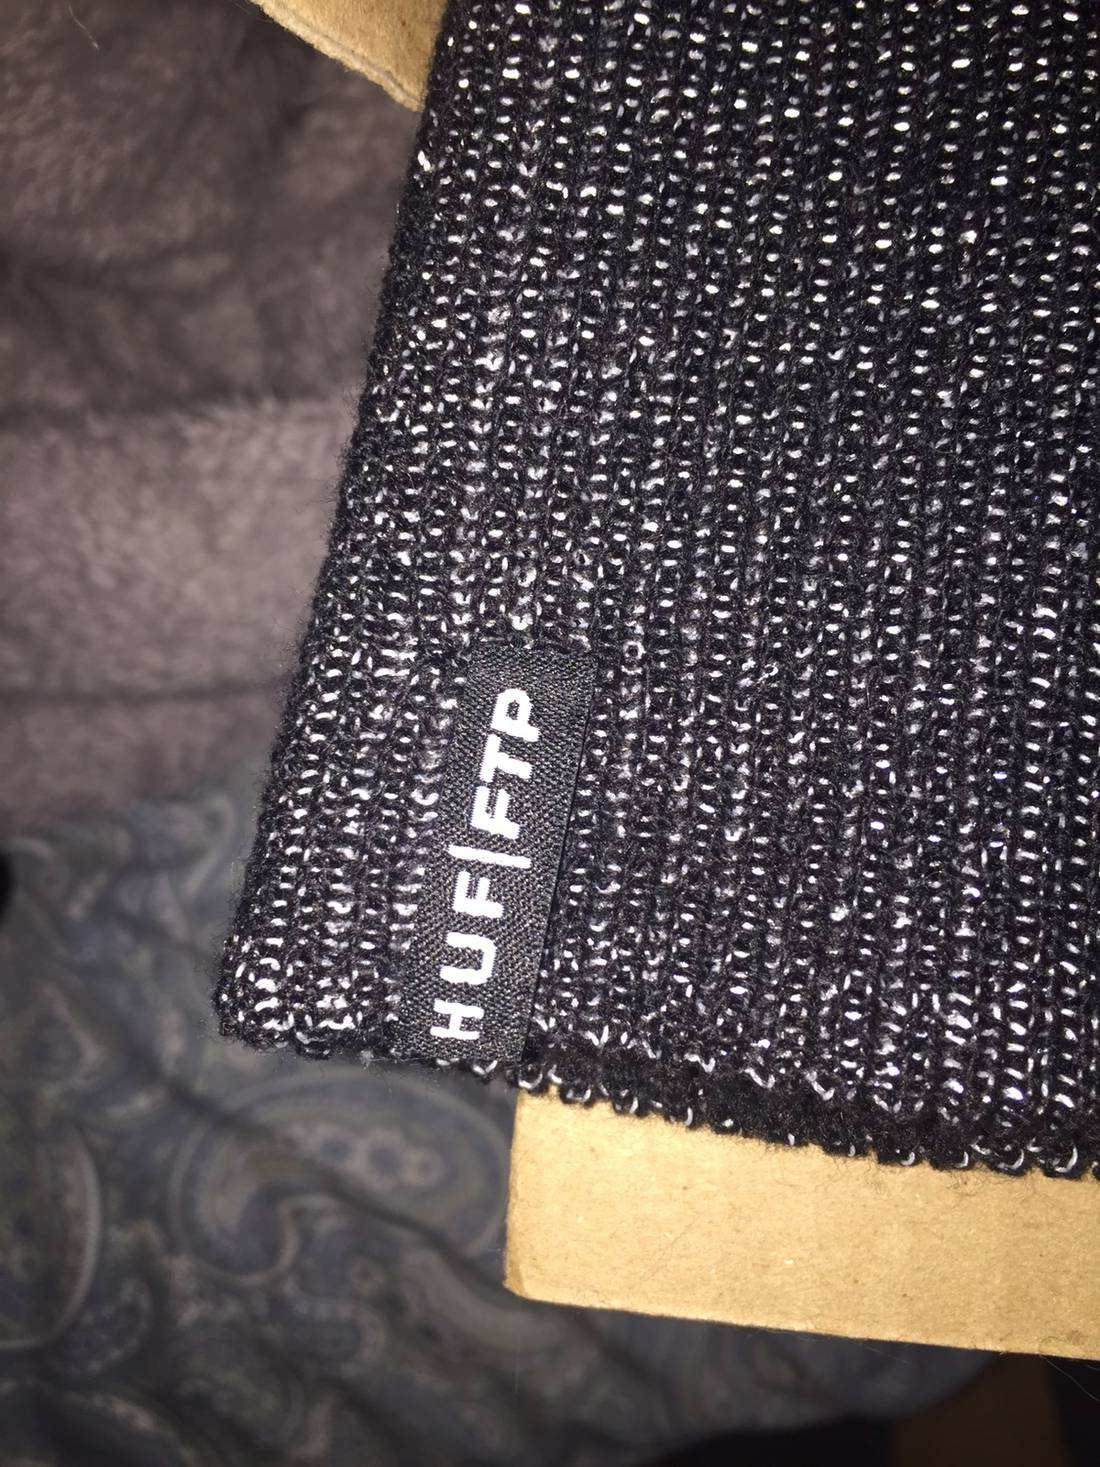 Huf FTP x HUF 3M REFLECTIVE SKI MASK Size one size - Hats for Sale ...